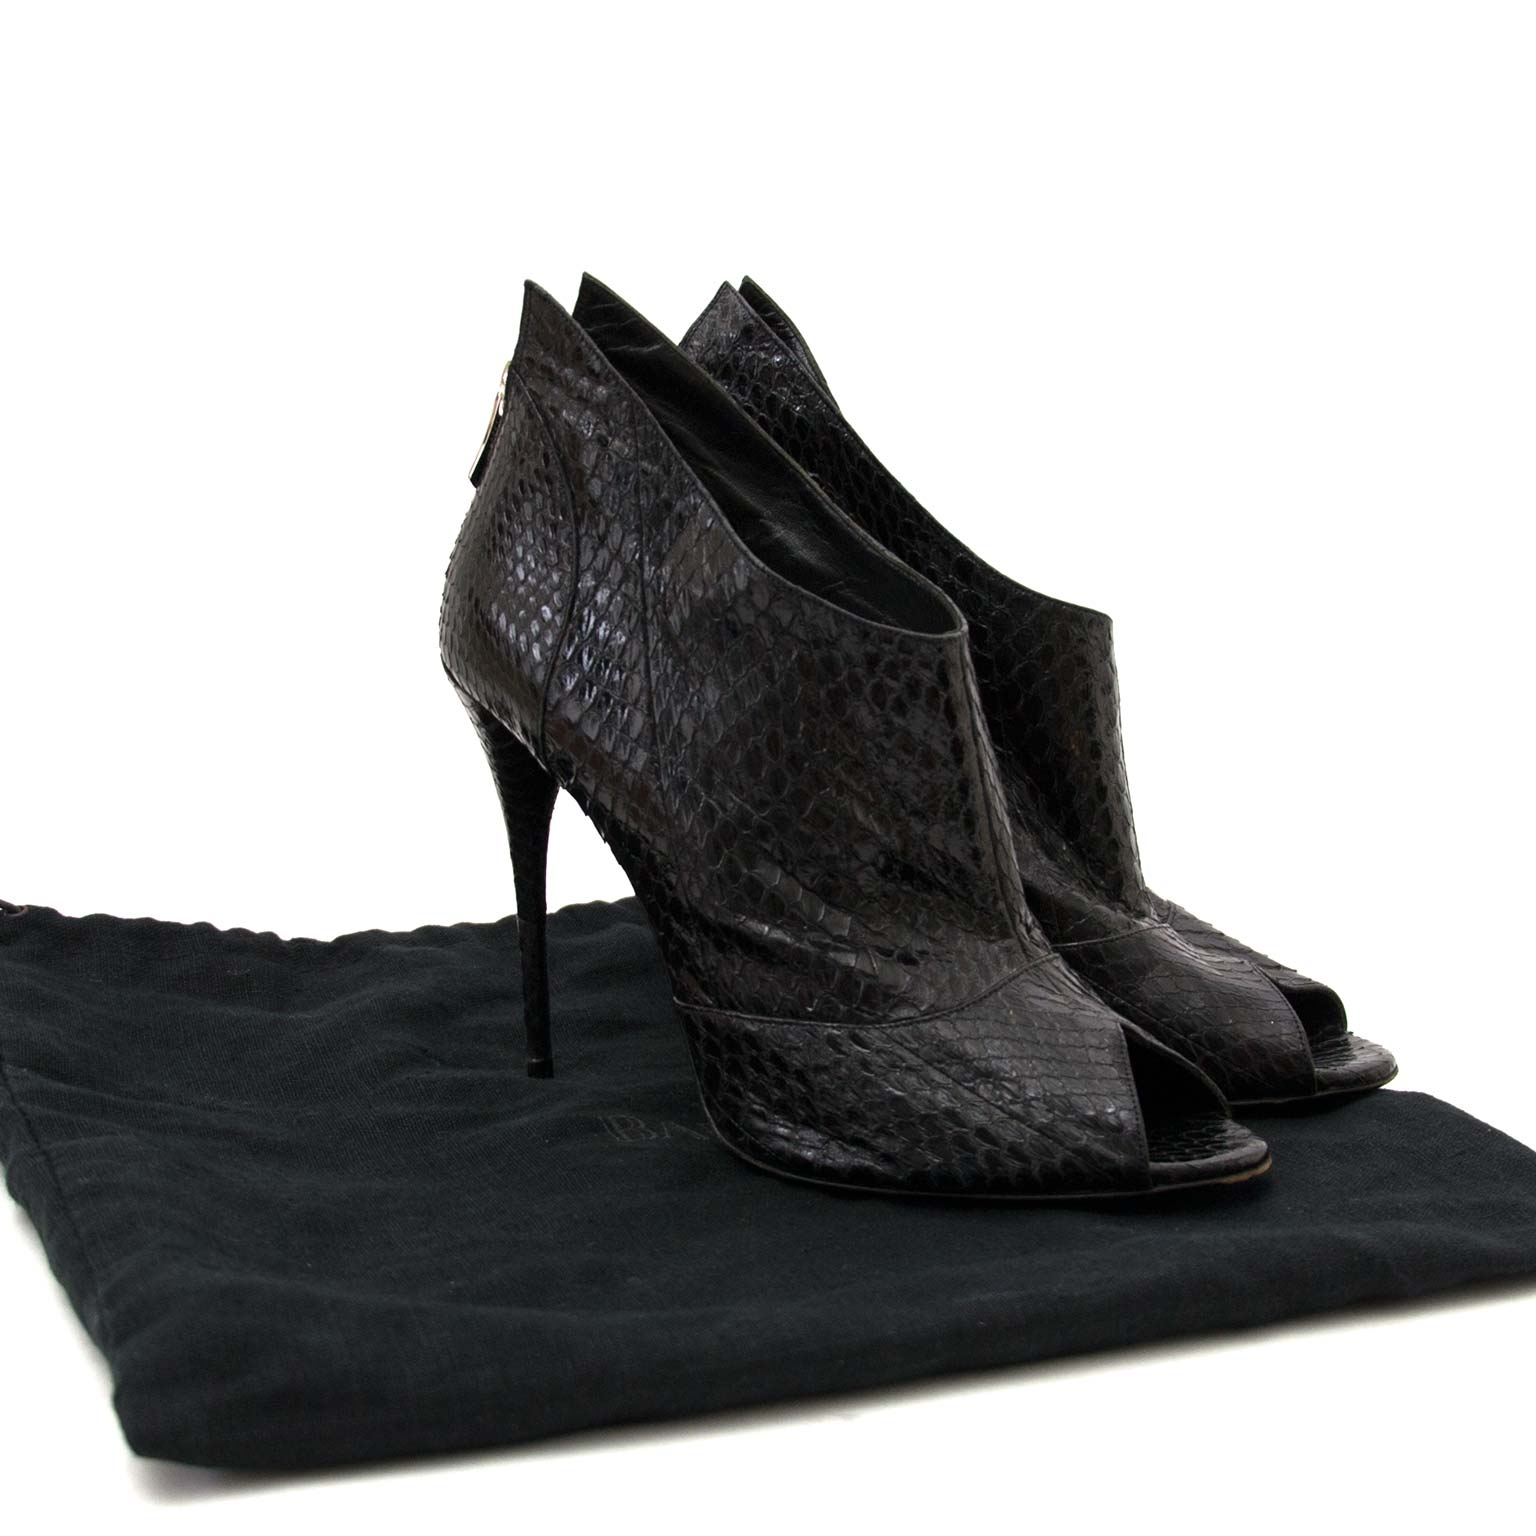 buy Balmain Black Python Peep Toe Heels - Size 41 at labellov antwerp